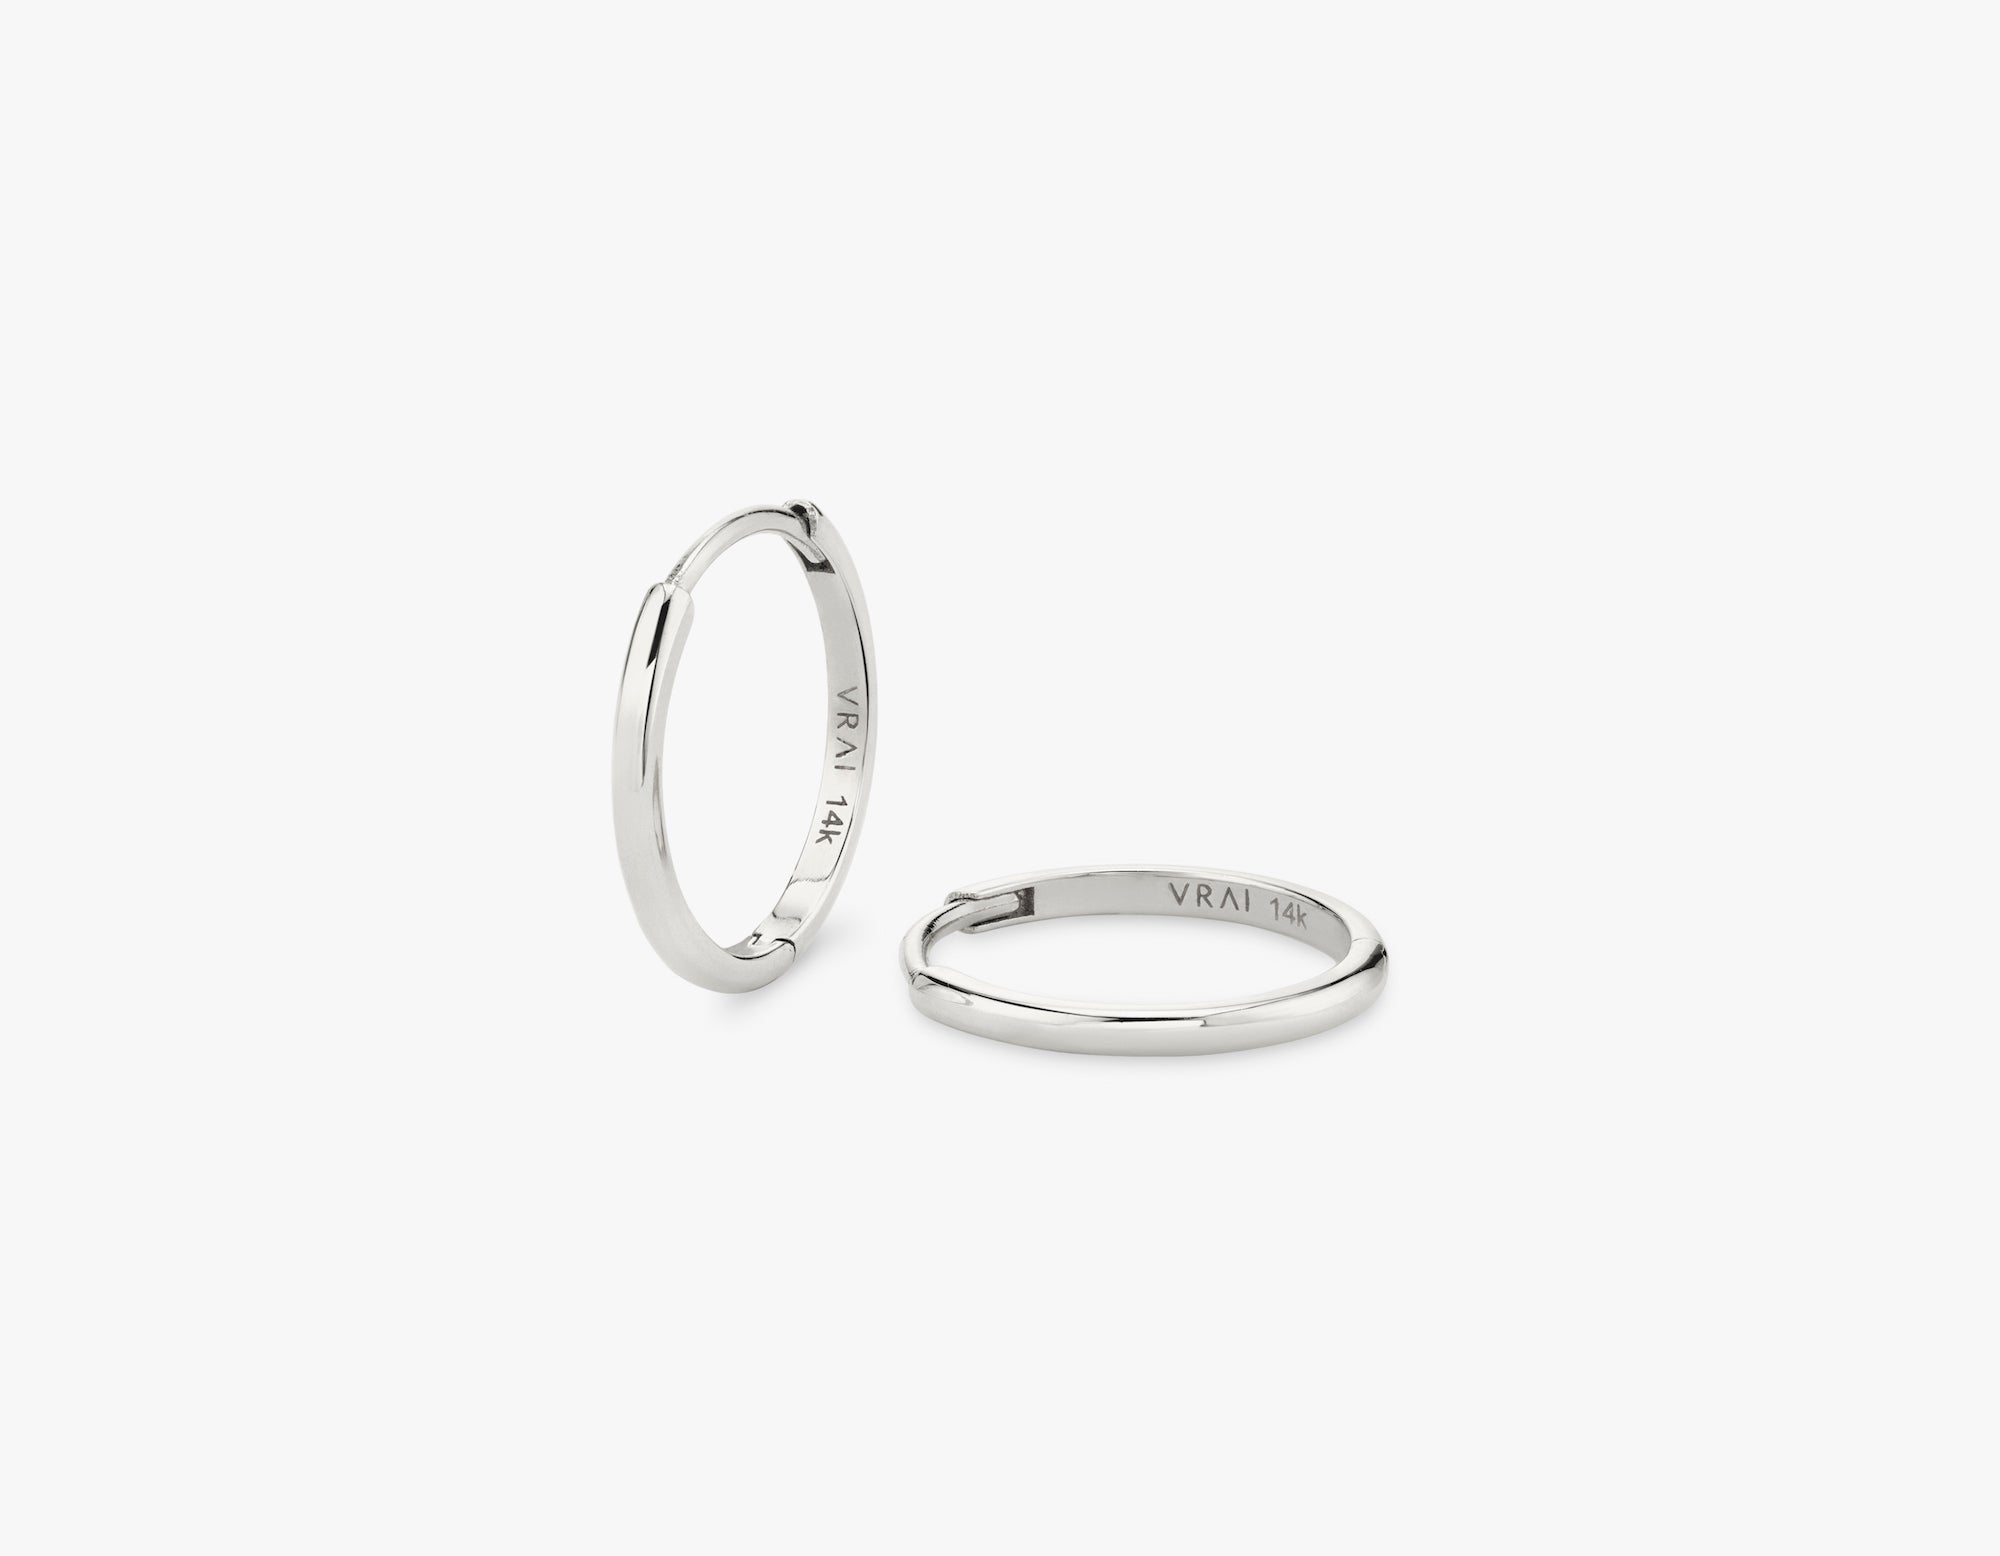 Vrai 14k solid gold simple minimalist Huggie Hoops earrings, 14K White Gold